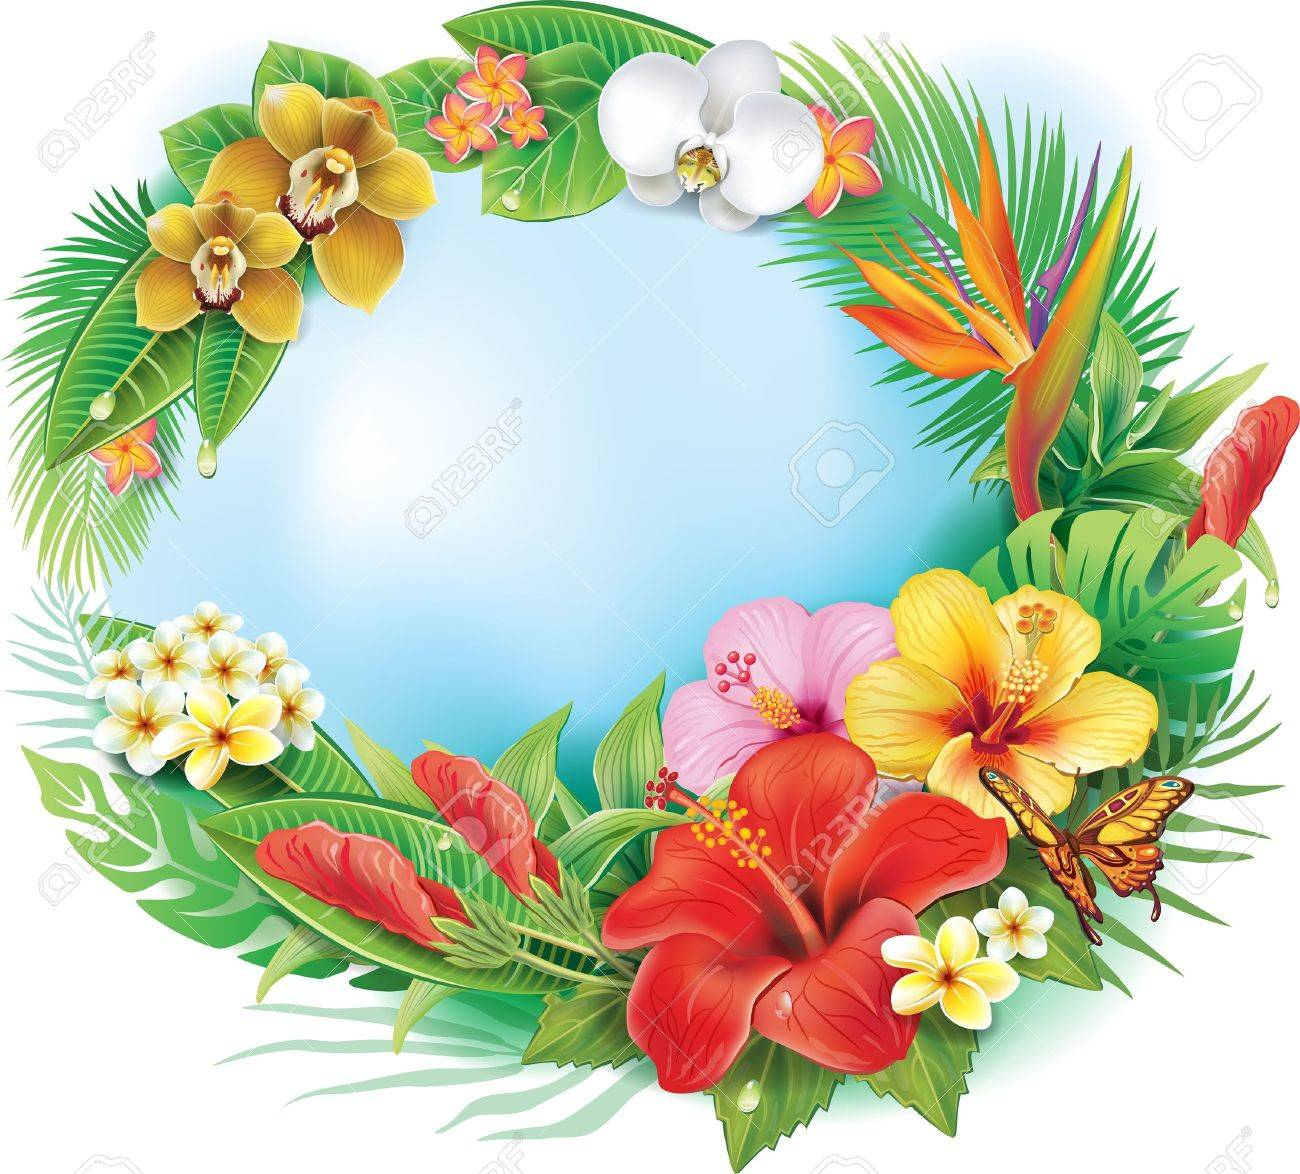 Round banner from tropical flowers and leaves - 21670792